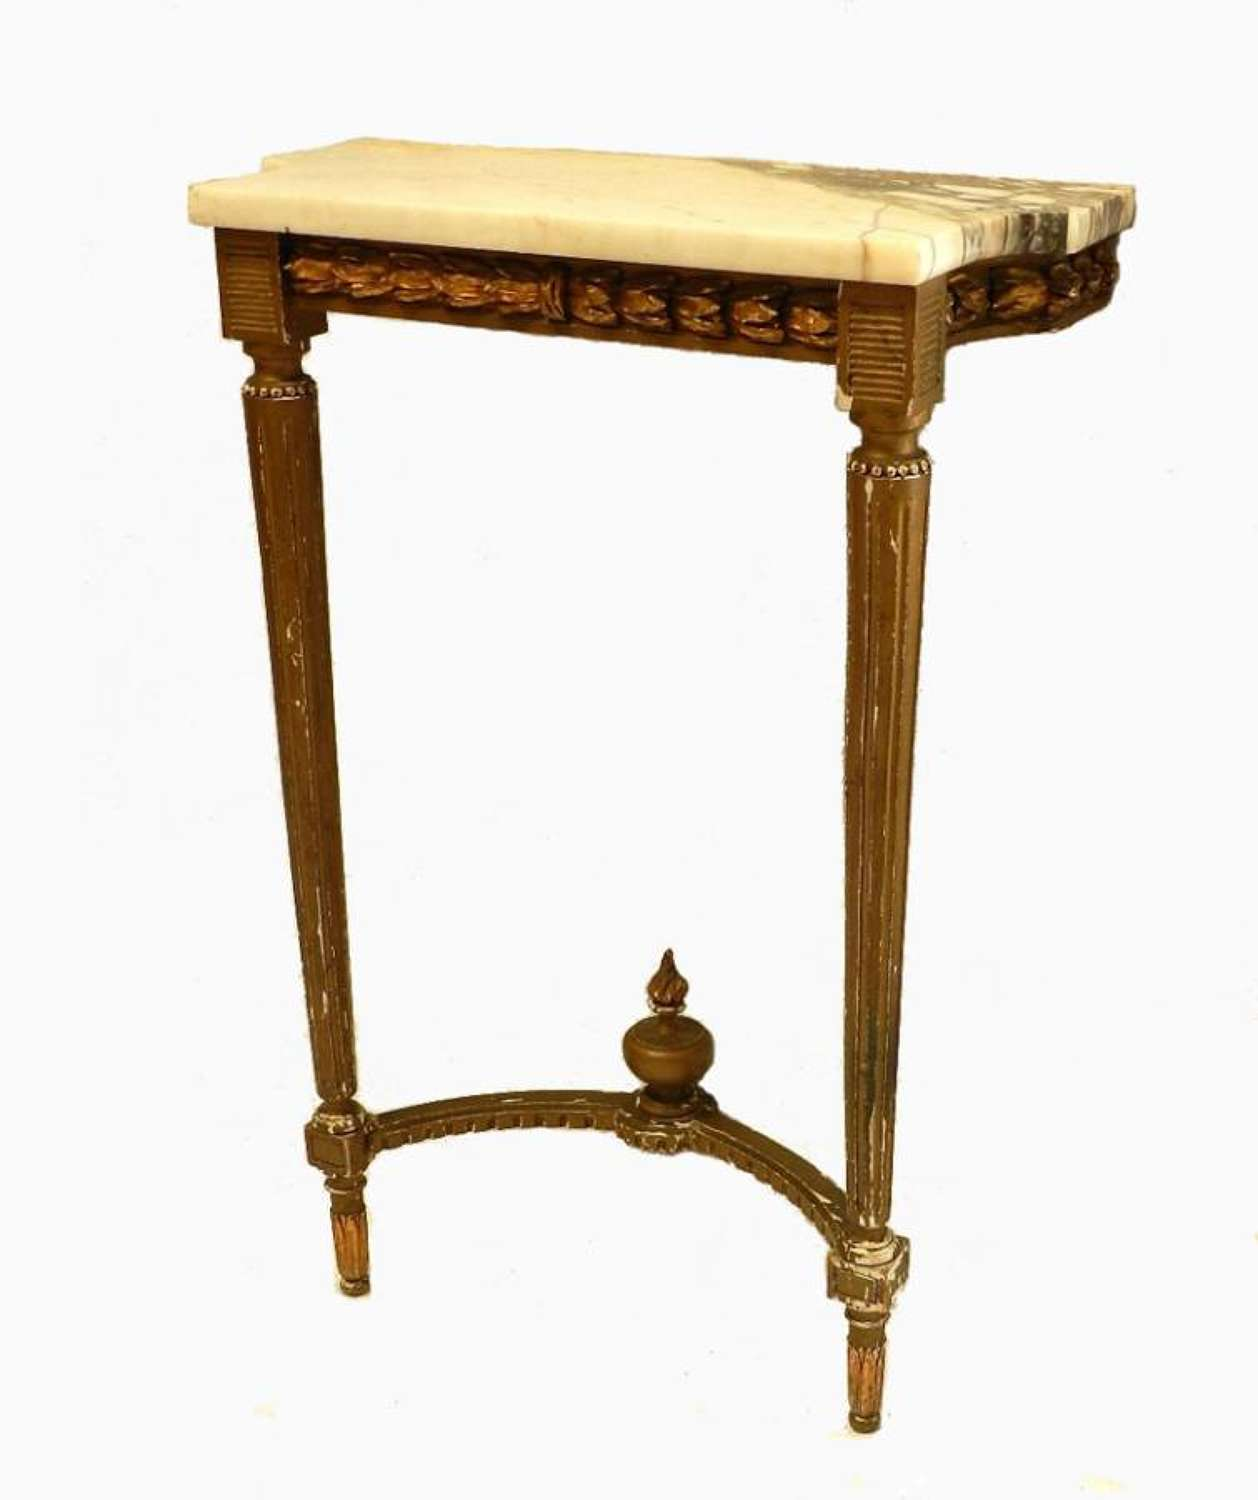 Original C19 French Louis Console Table